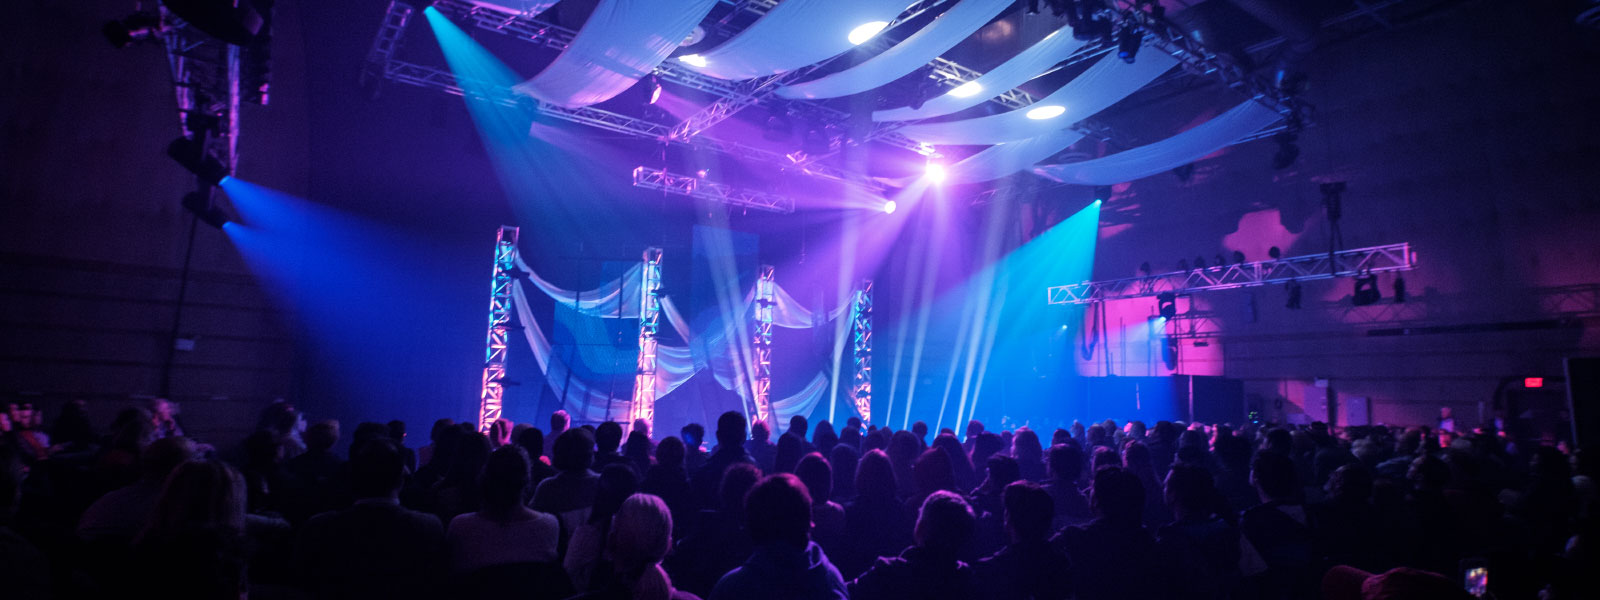 Clifton Taylor Shares Importance Of Stage Lighting Design